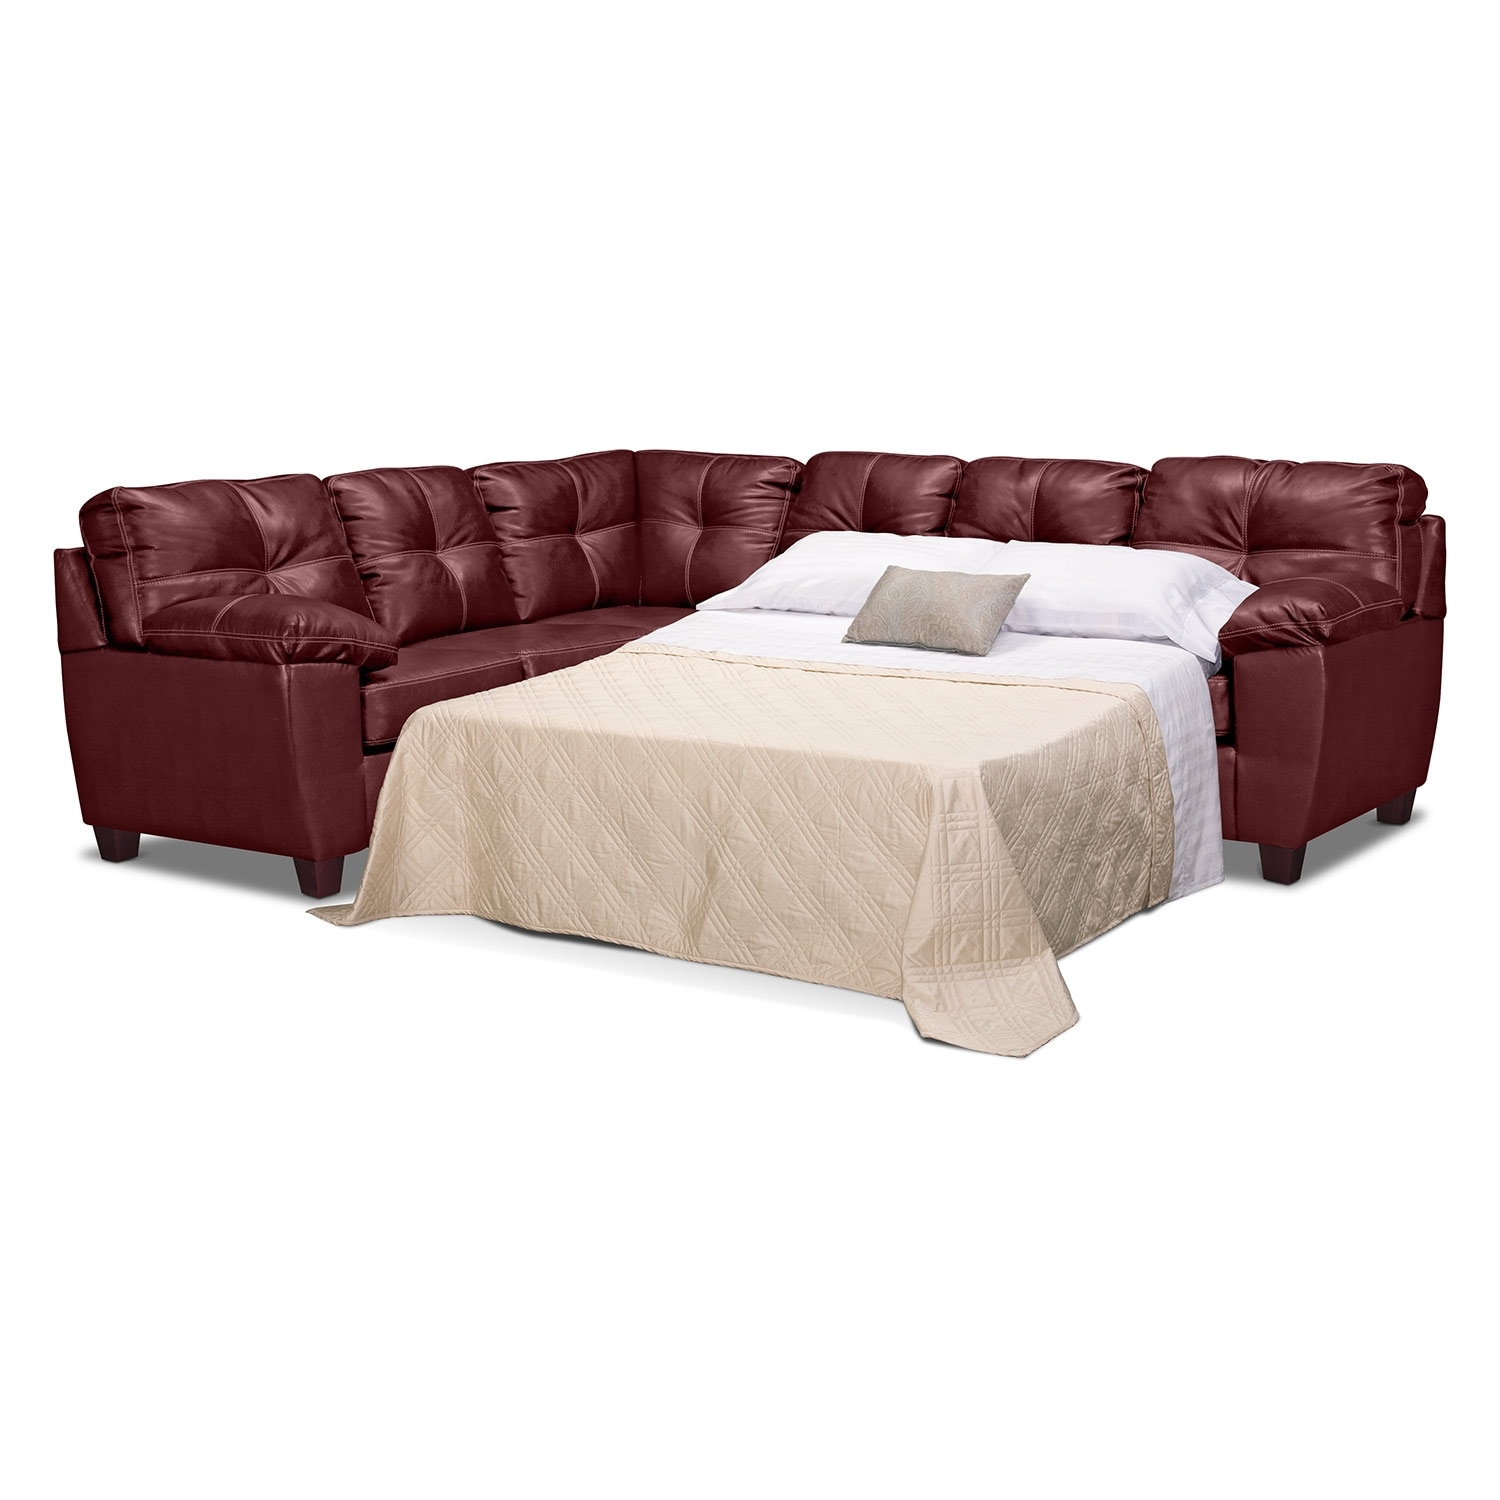 rialto ii leather 2 pc sleeper sectional value city